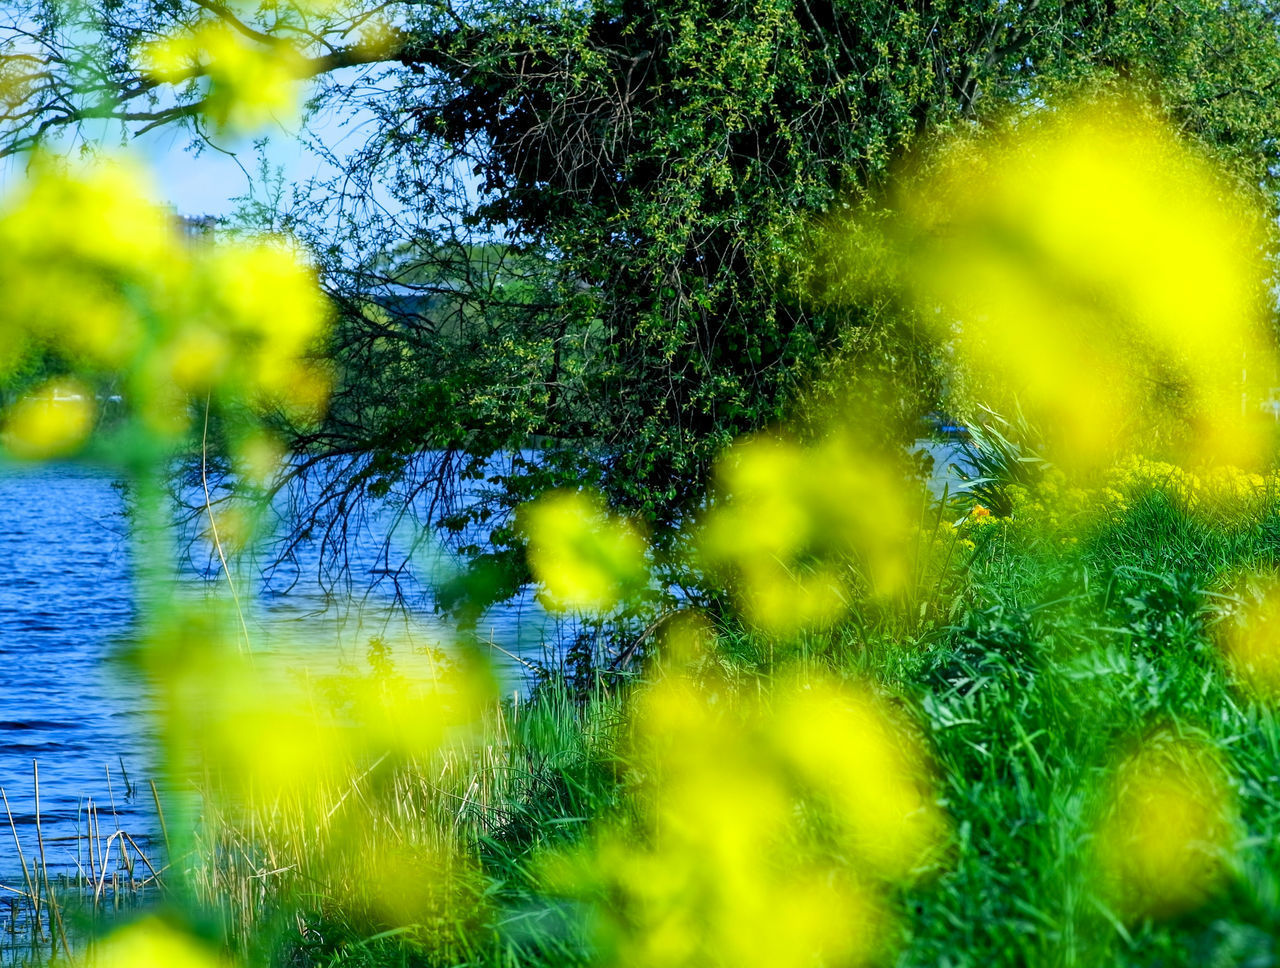 plant, growth, green color, selective focus, beauty in nature, tree, nature, no people, day, water, close-up, freshness, tranquility, yellow, lake, outdoors, flower, moss, flowering plant, lichen